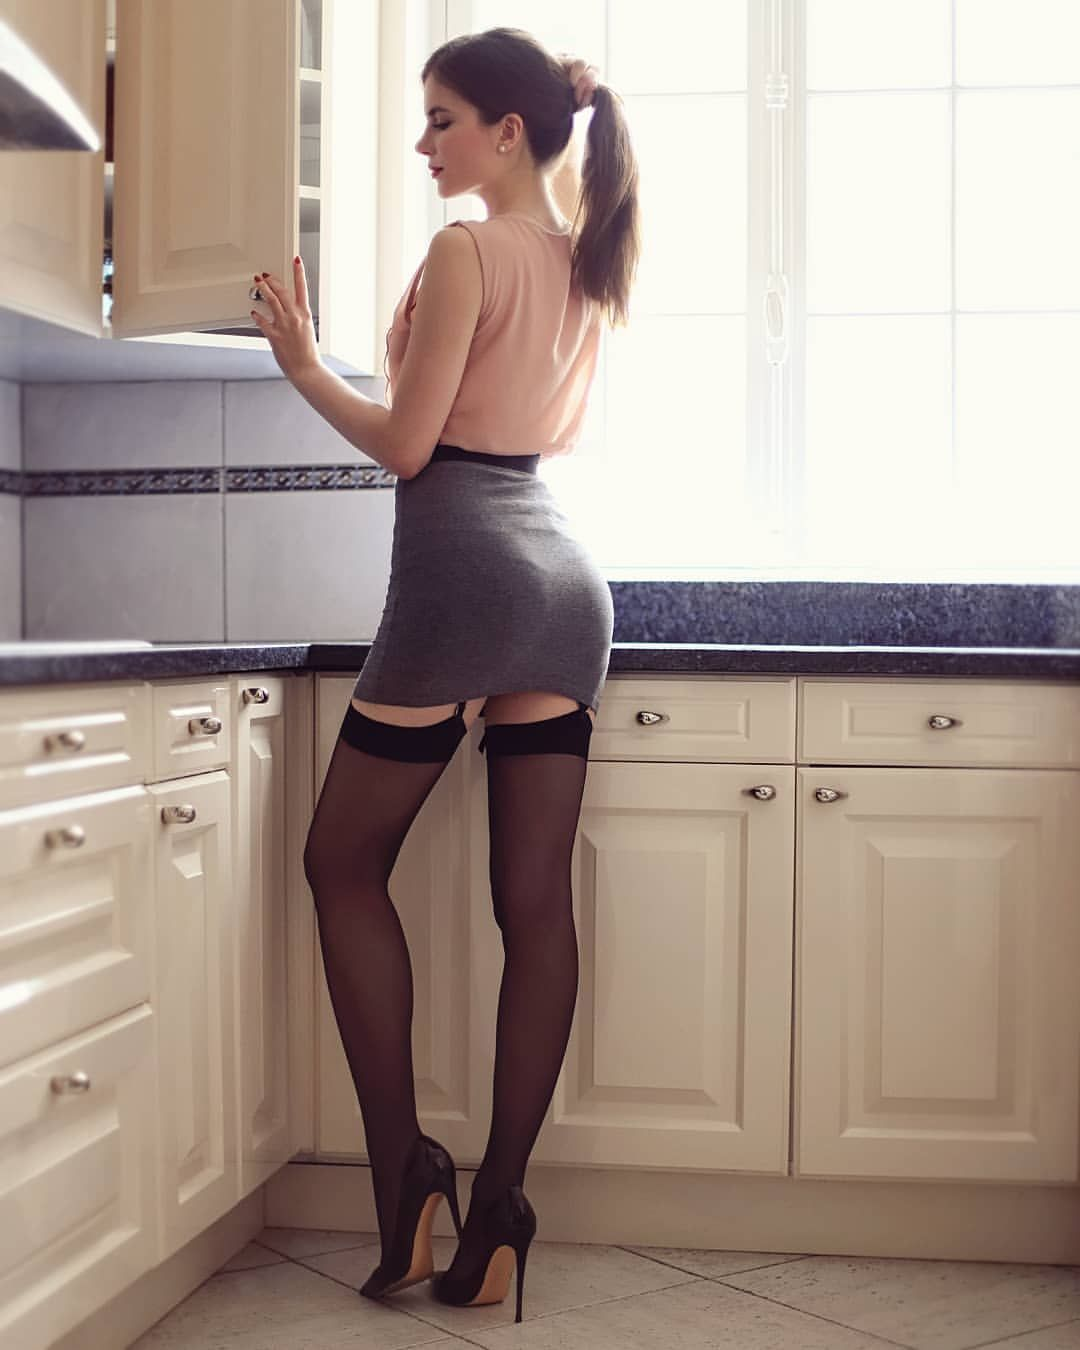 Housewife pantyhose down thighs photos